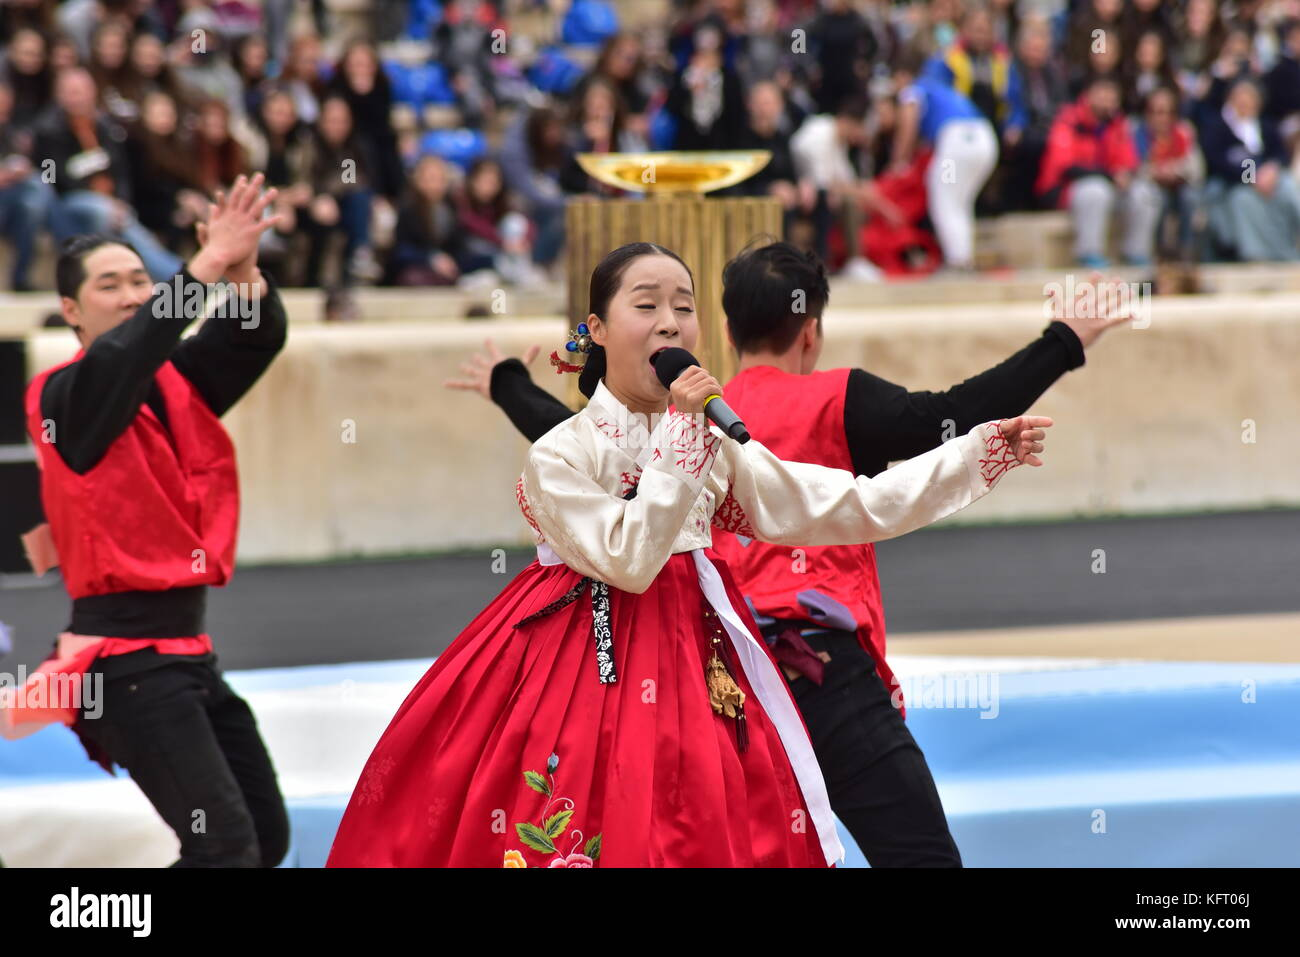 Athens, Greece. 31st Oct, 2017. During the Republic of Korea's Cultural event. The Handover Ceremony of the Olympic Stock Photo